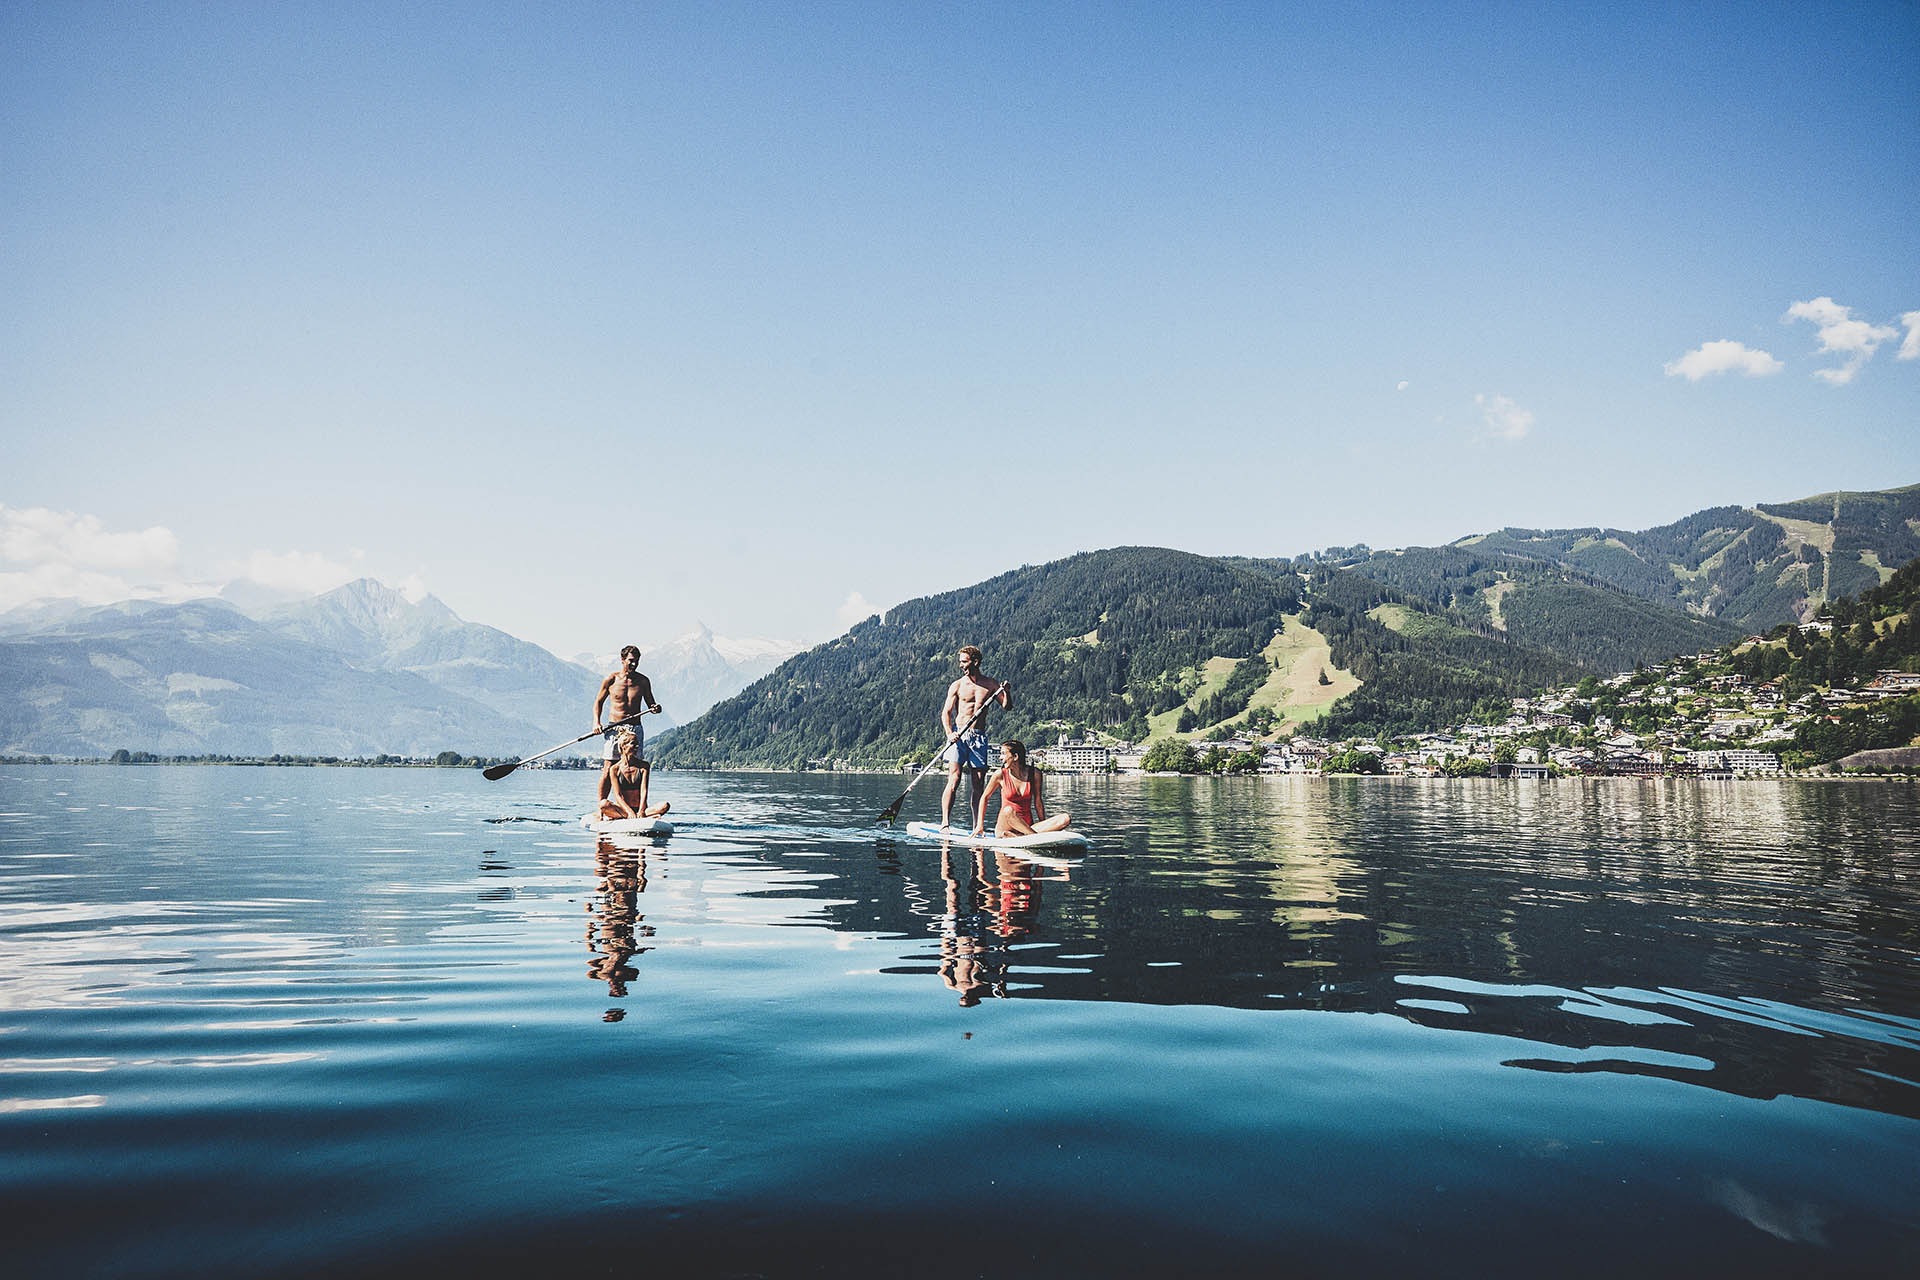 stand-up-paddling-am-zeller-see---stand-up-paddling-at-lake-zell-c-zell-am-see-kaprun-tourismus